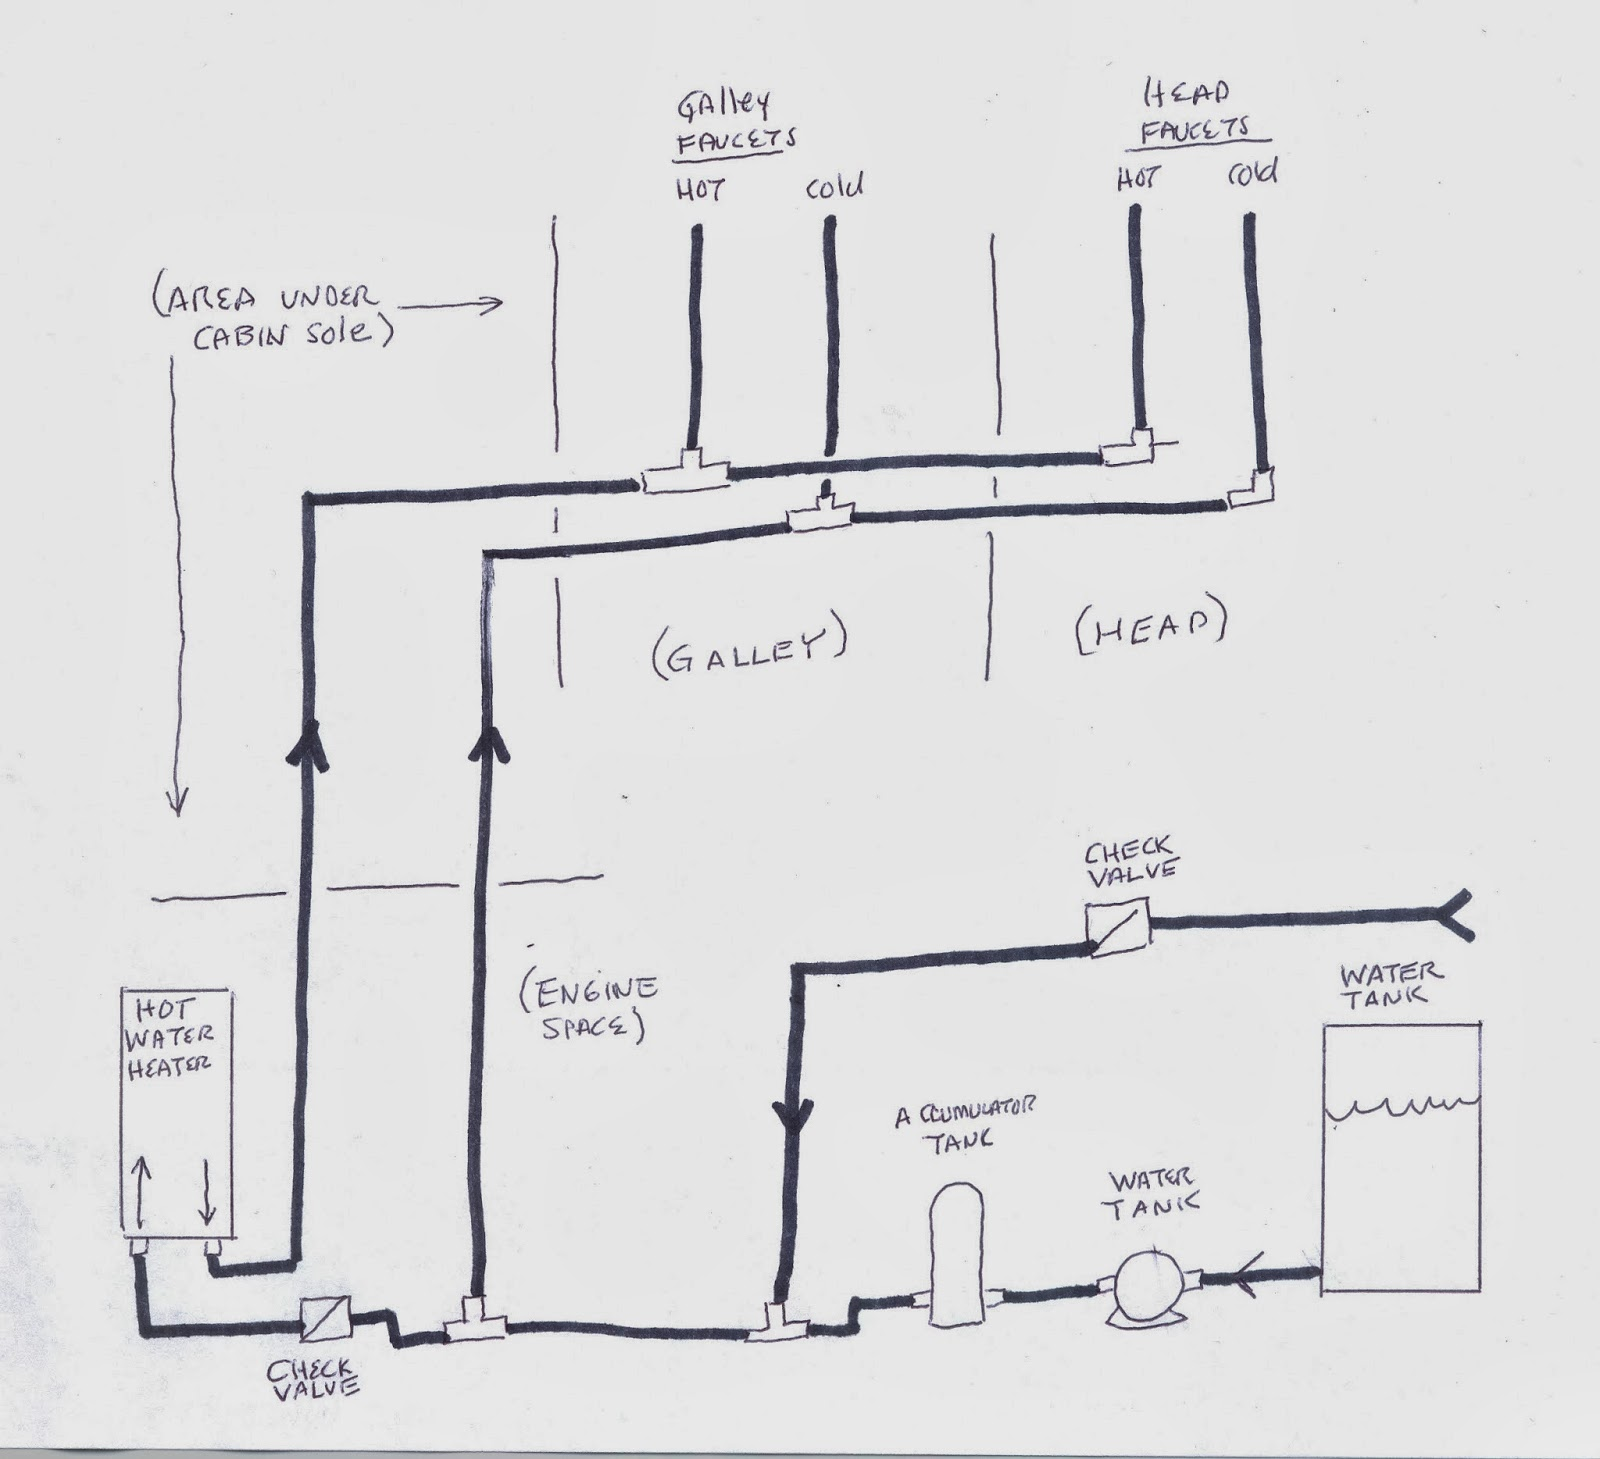 boat water system diagram emg 81 85 wiring solder silverton 34c taking a day off from plumbing